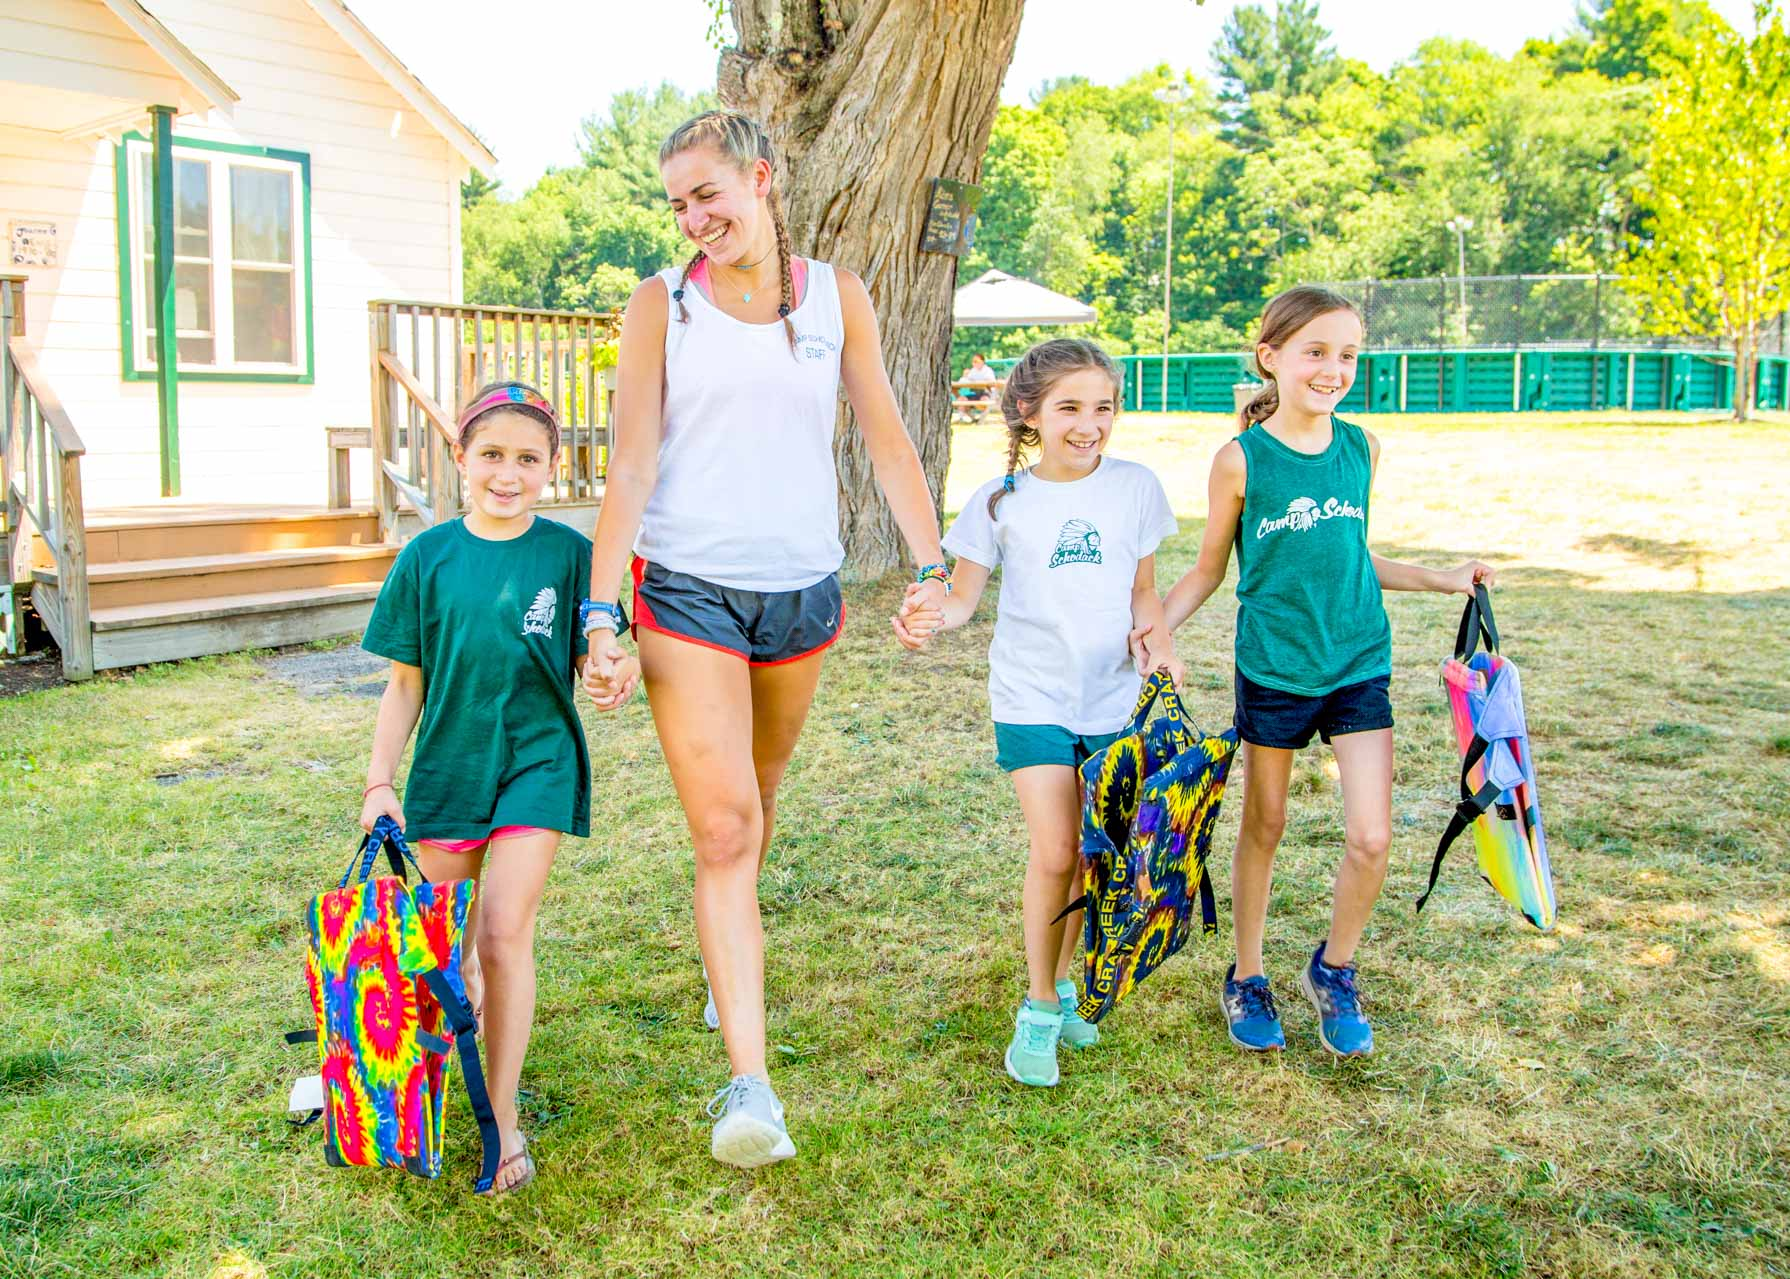 Staff member walks alongside three young campers